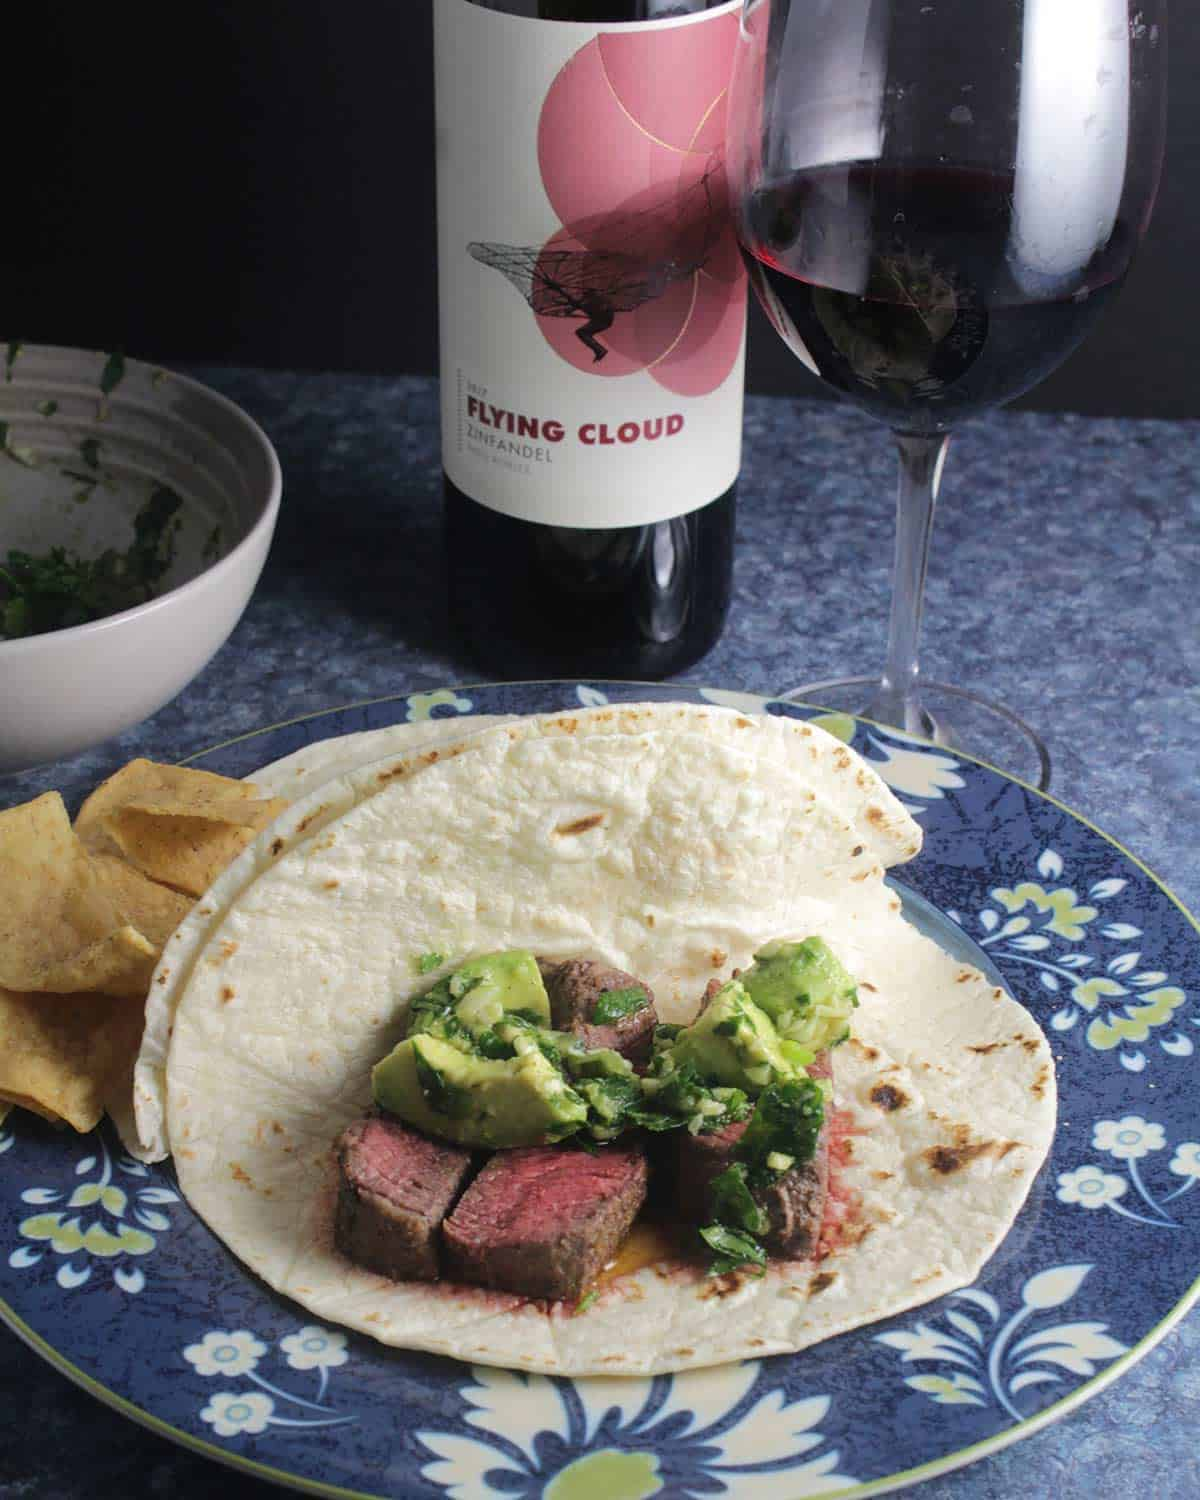 Flying Cloud Zinfandel with tacos.